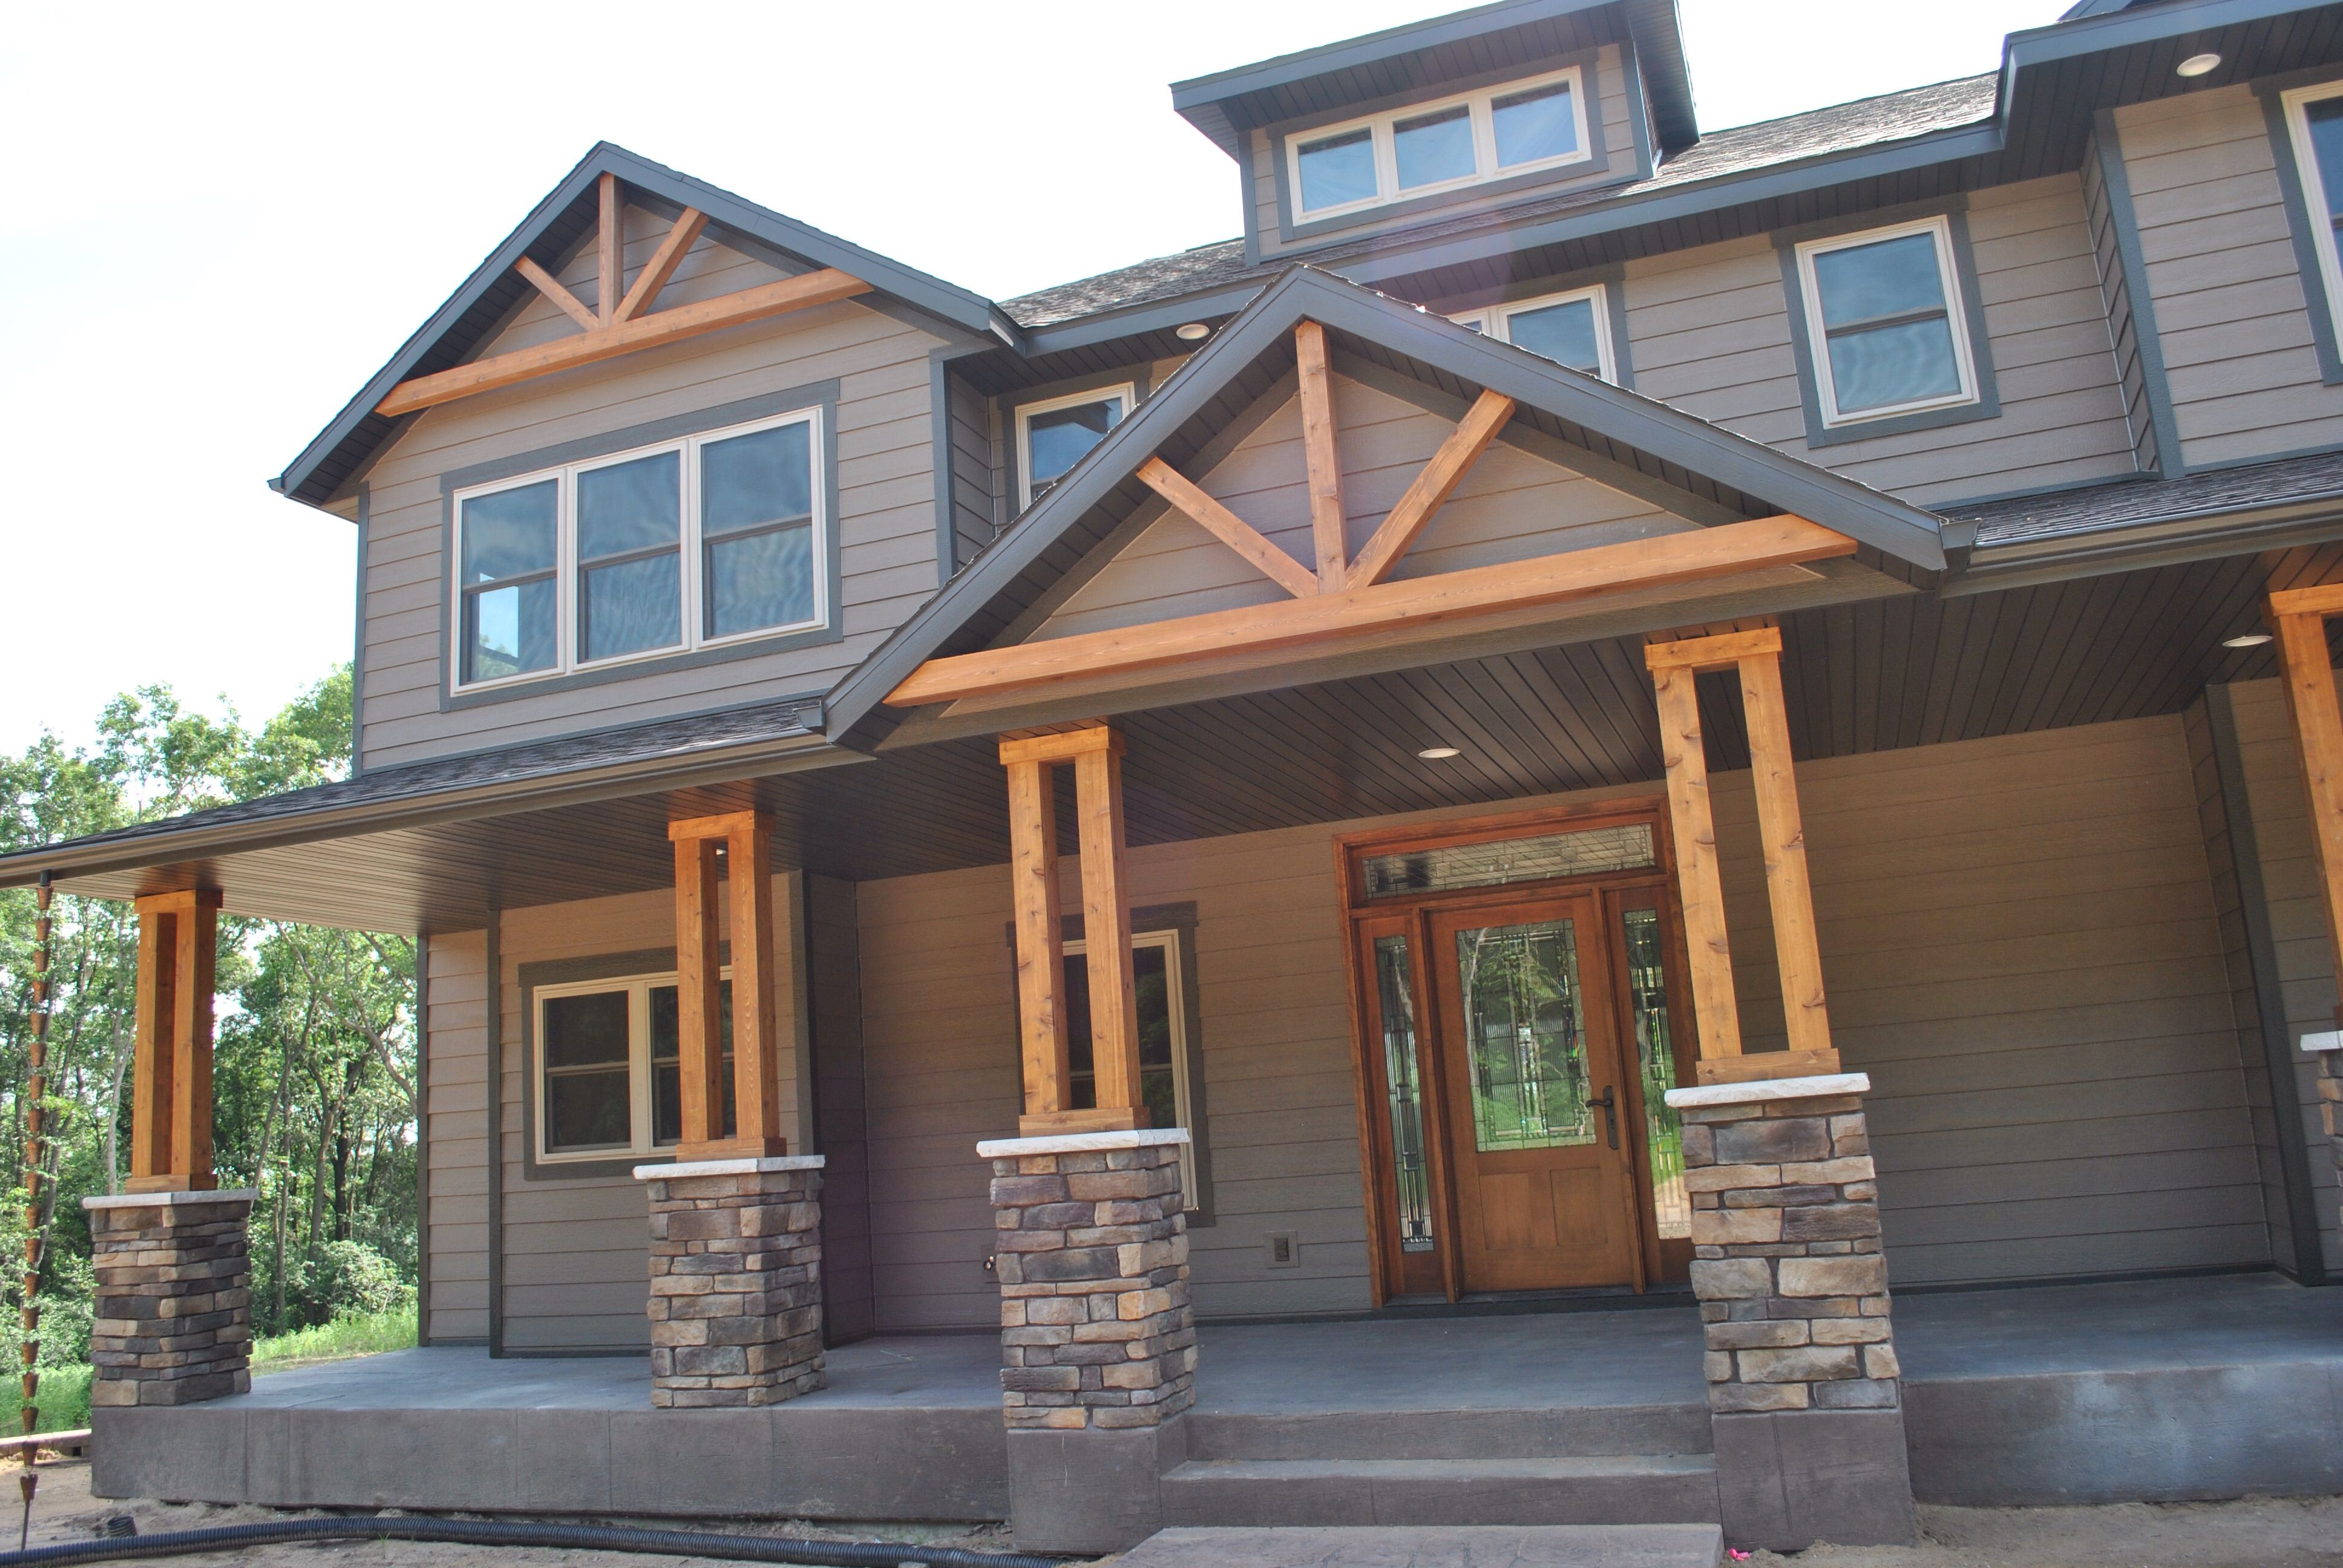 Add A Rustic Touch To Your Home With Wooden Gable Accents